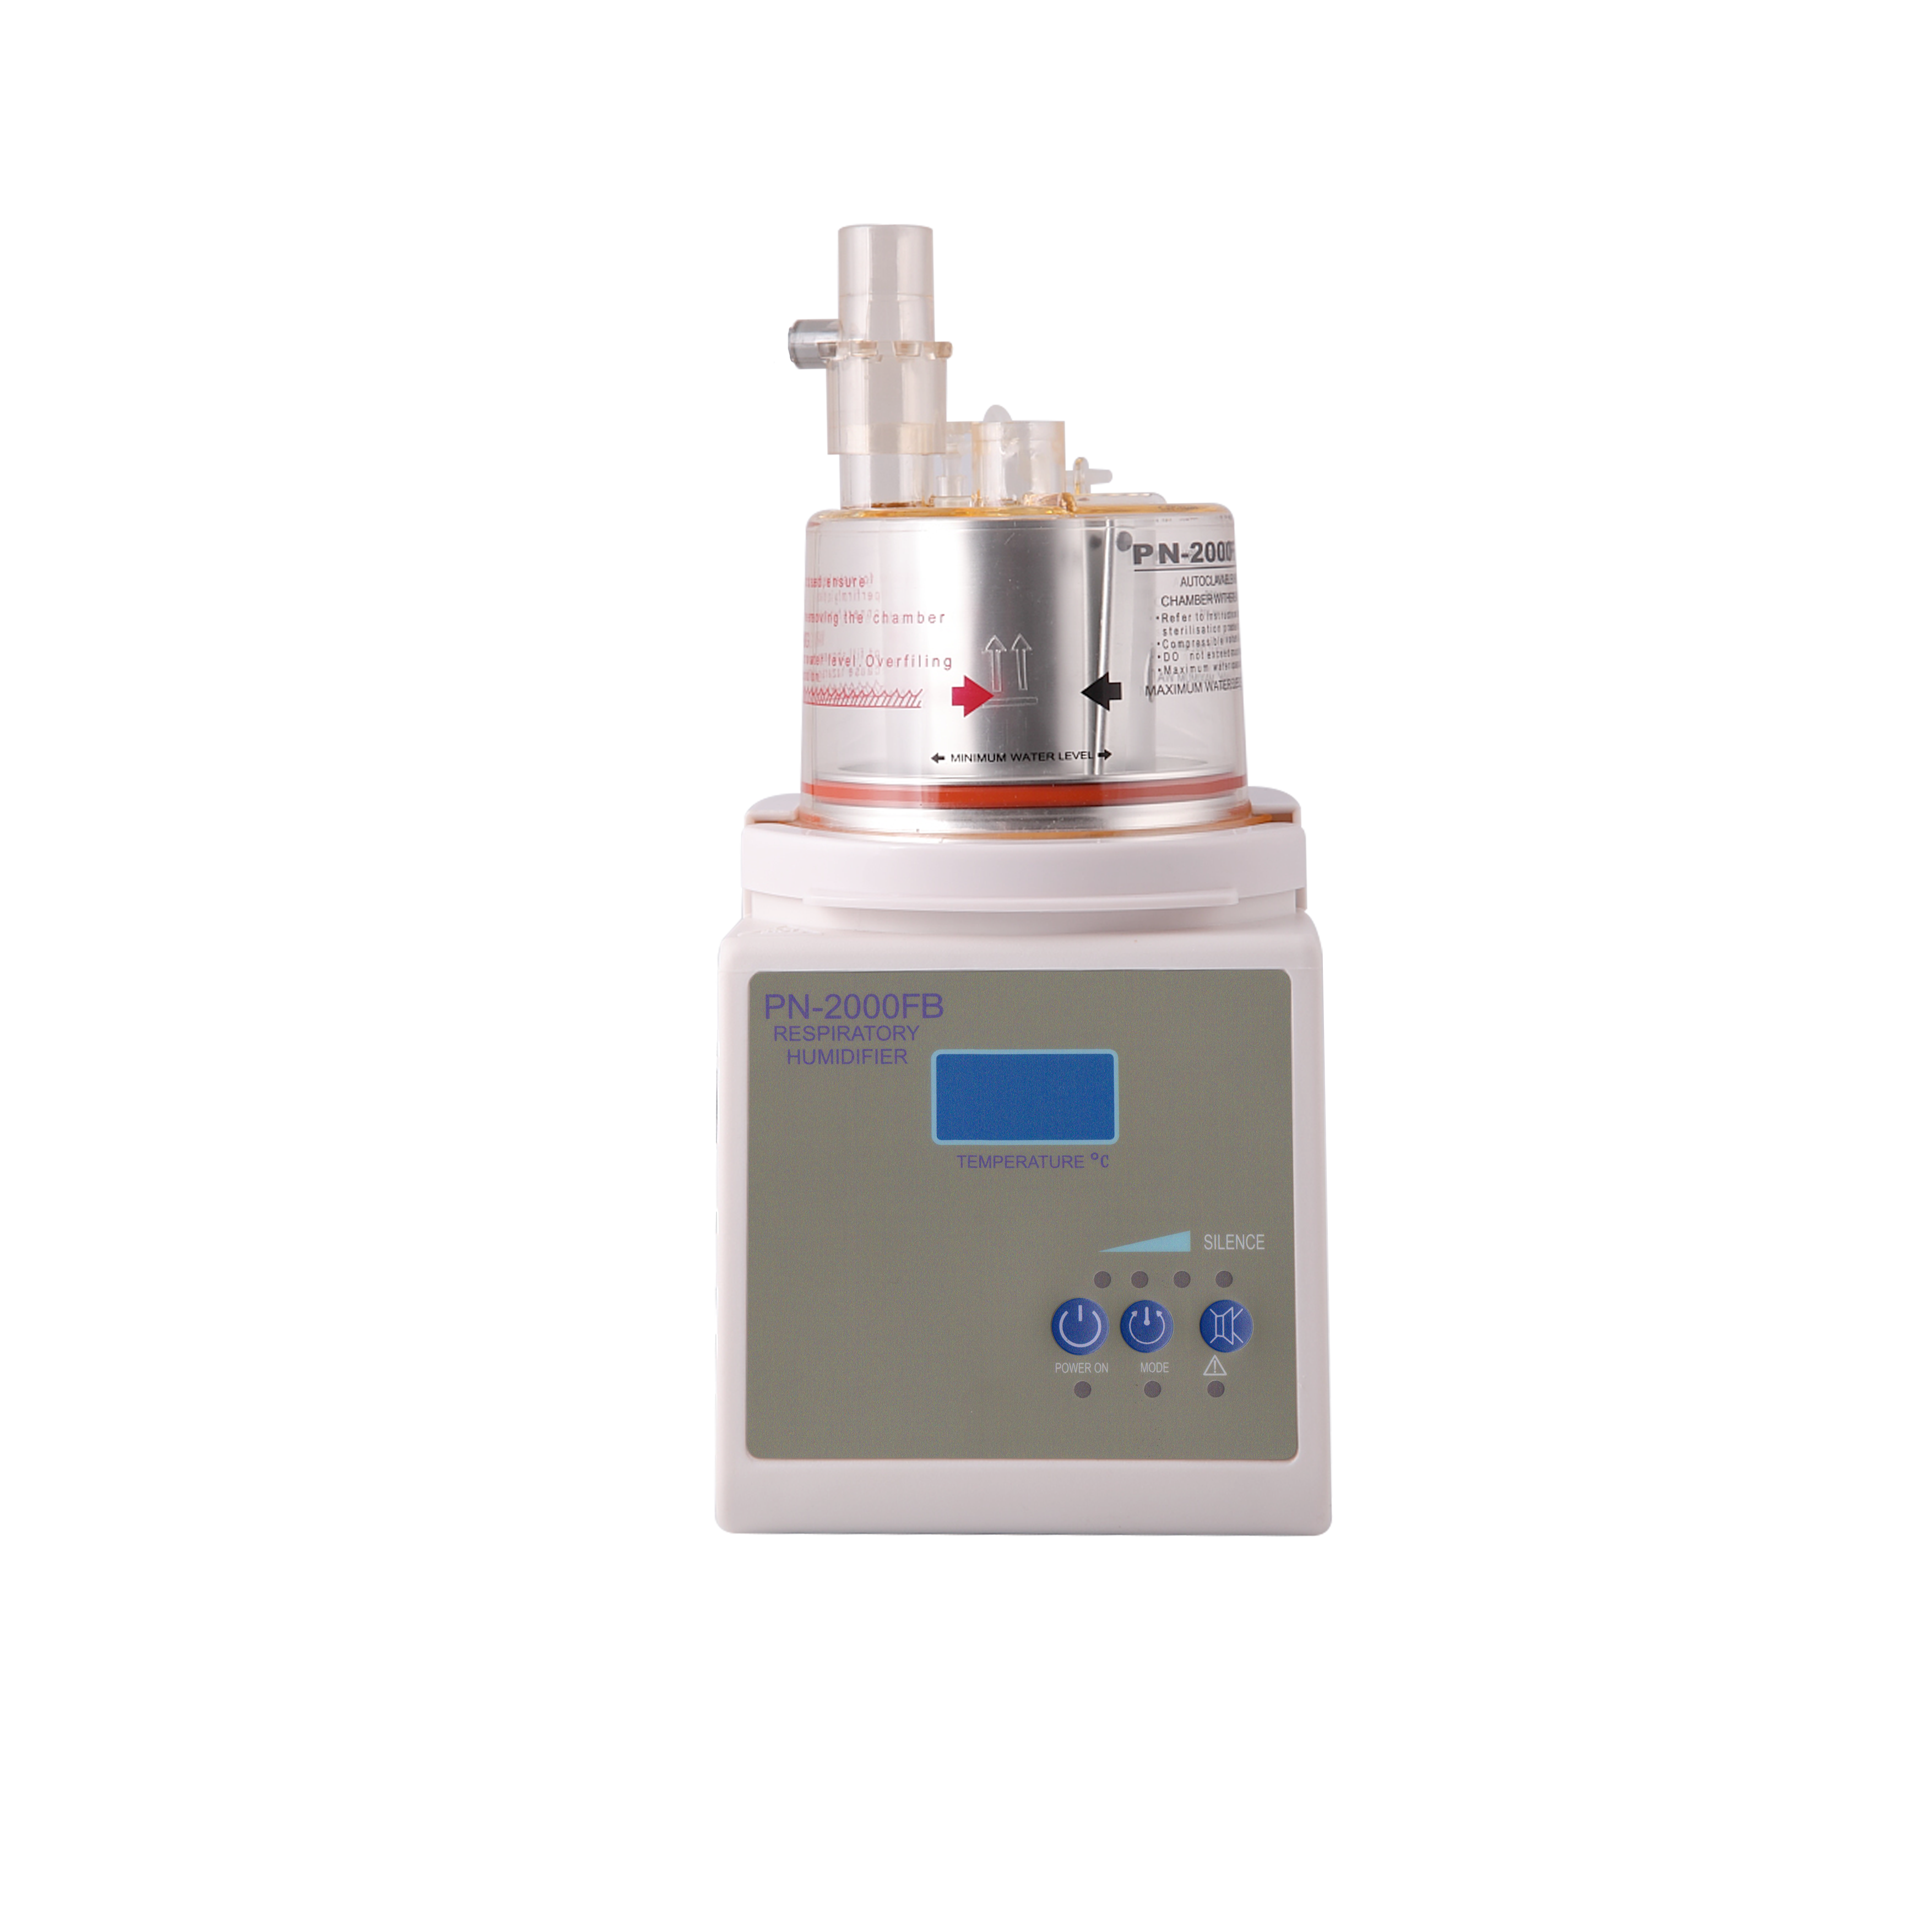 Medical Servo Controlled Respiratory Humidifier for Mechanical Ventilation or High Flow Oxygen Therapy for hospital equipment